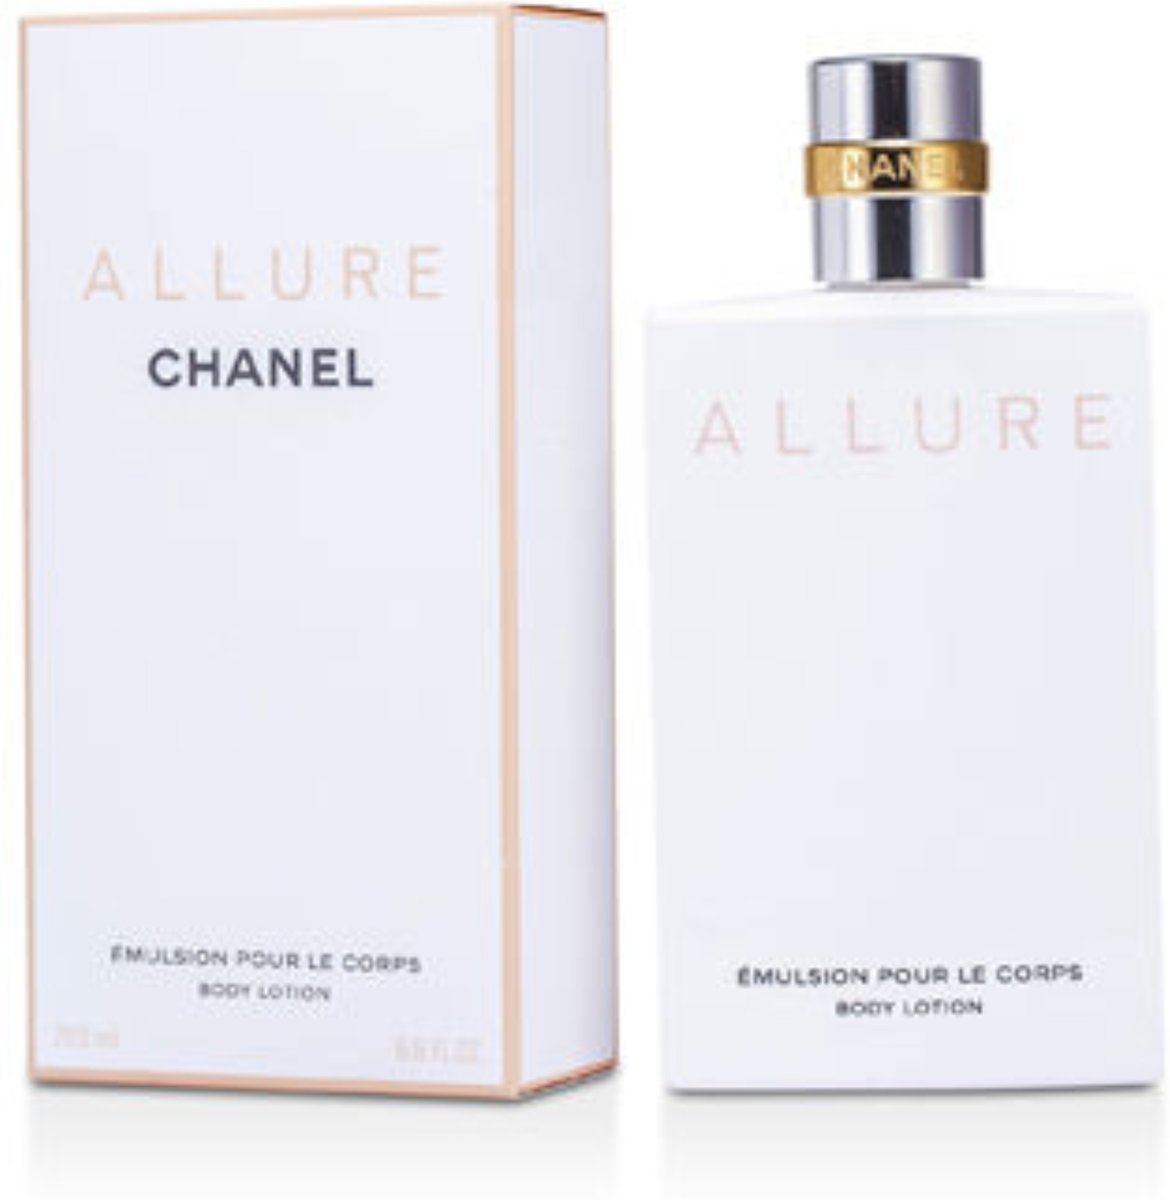 Chanel Allure - 200 ml - bodylotion